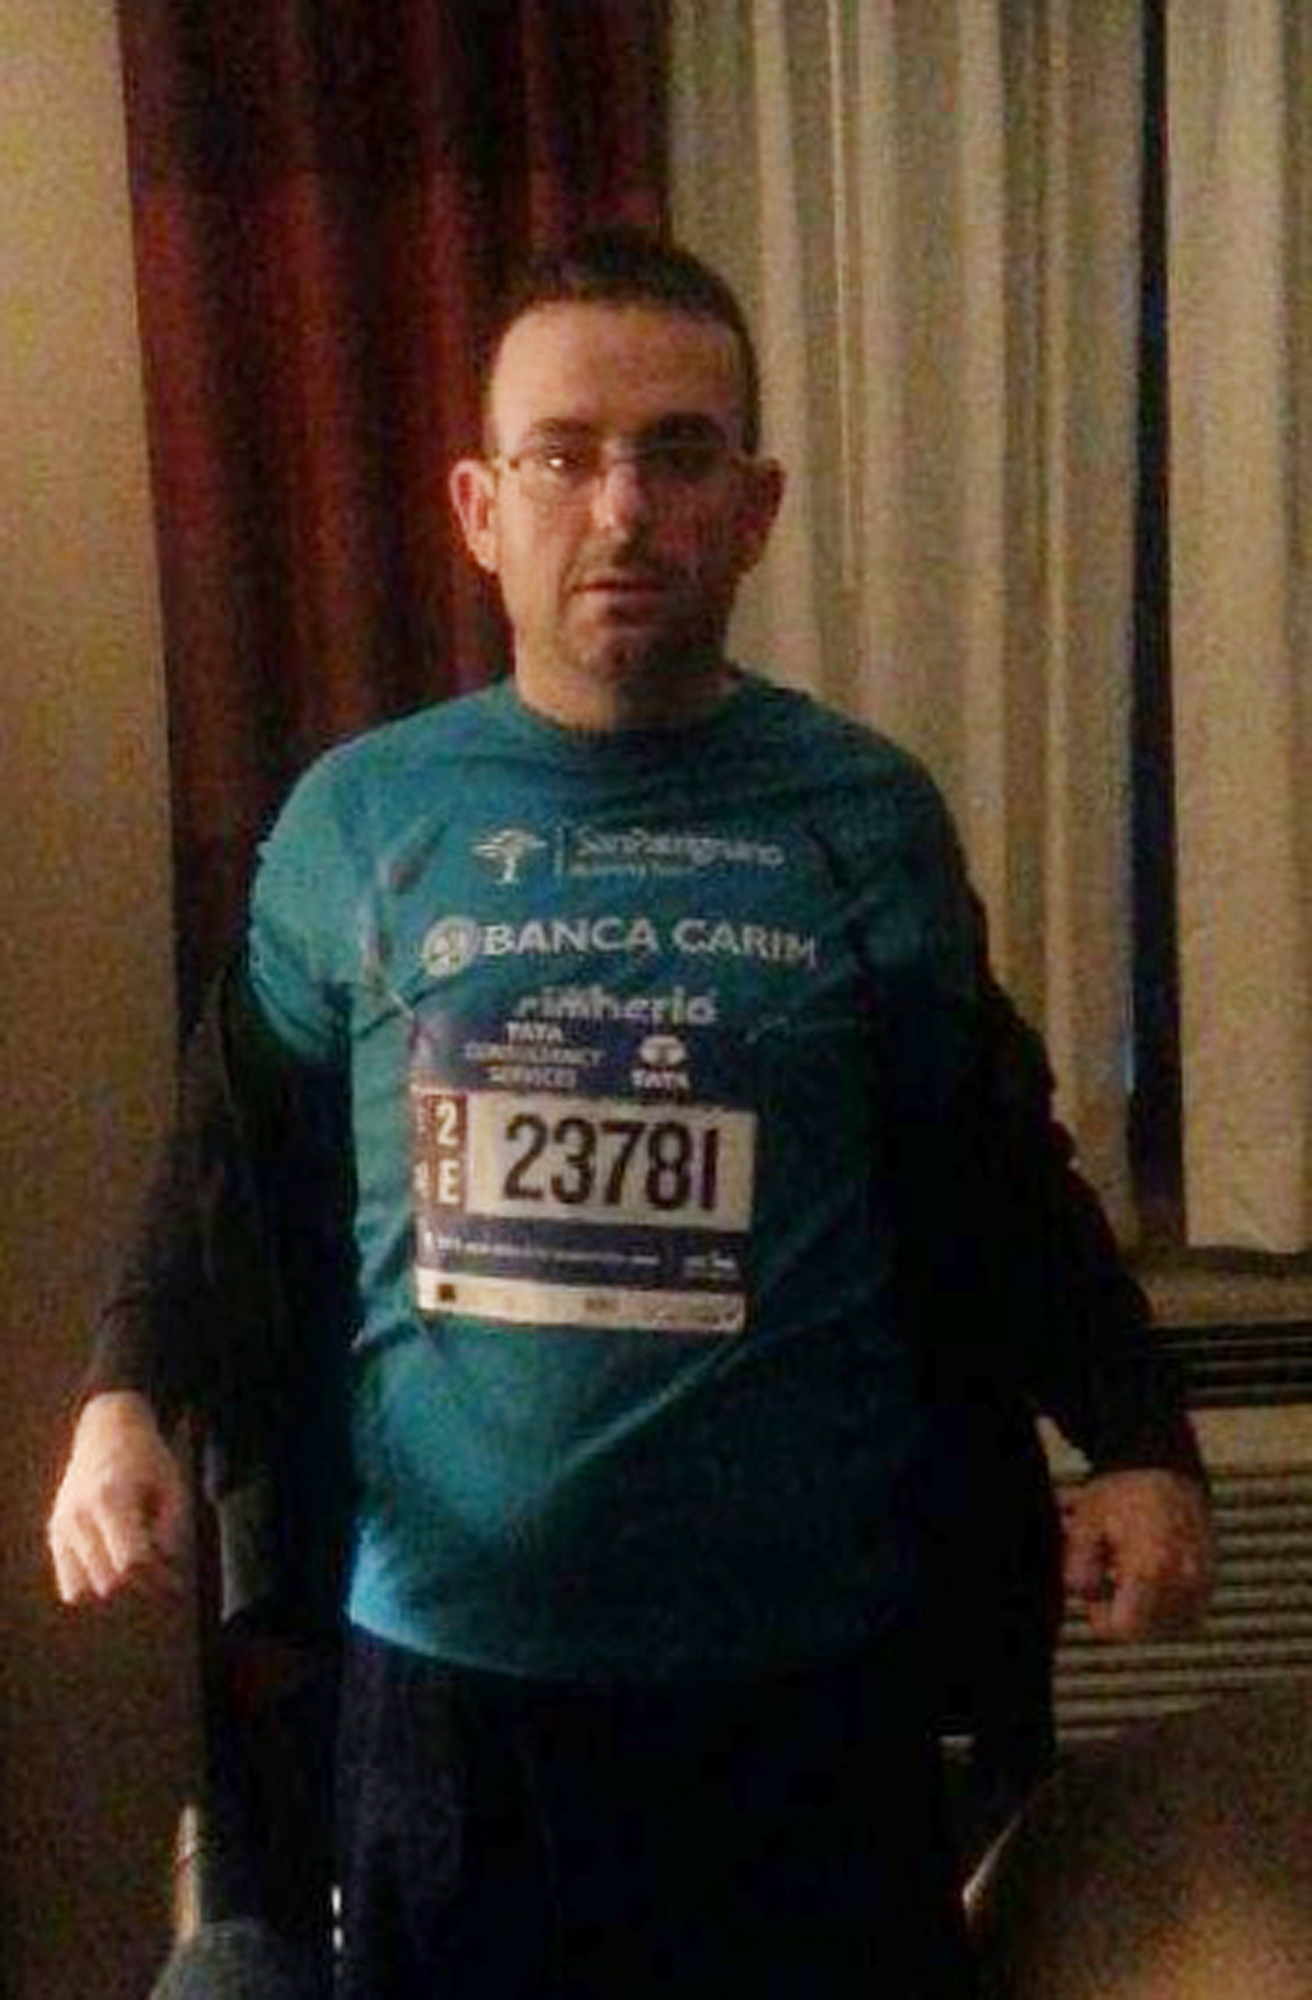 This undated photo provided by the New York Police Department shows Gianclaudio Marengo. The NYPD is asking for the public's help in locating Marengo, an Italian man who speaks only Italian and is mentally challenged, who ran in the New York City Marathon. Police said Marengo was last seen at the finish line in Central Park at around 3 p.m. Sunday, Nov. 1, 2015. (Courtesy of New York Police Department via AP)